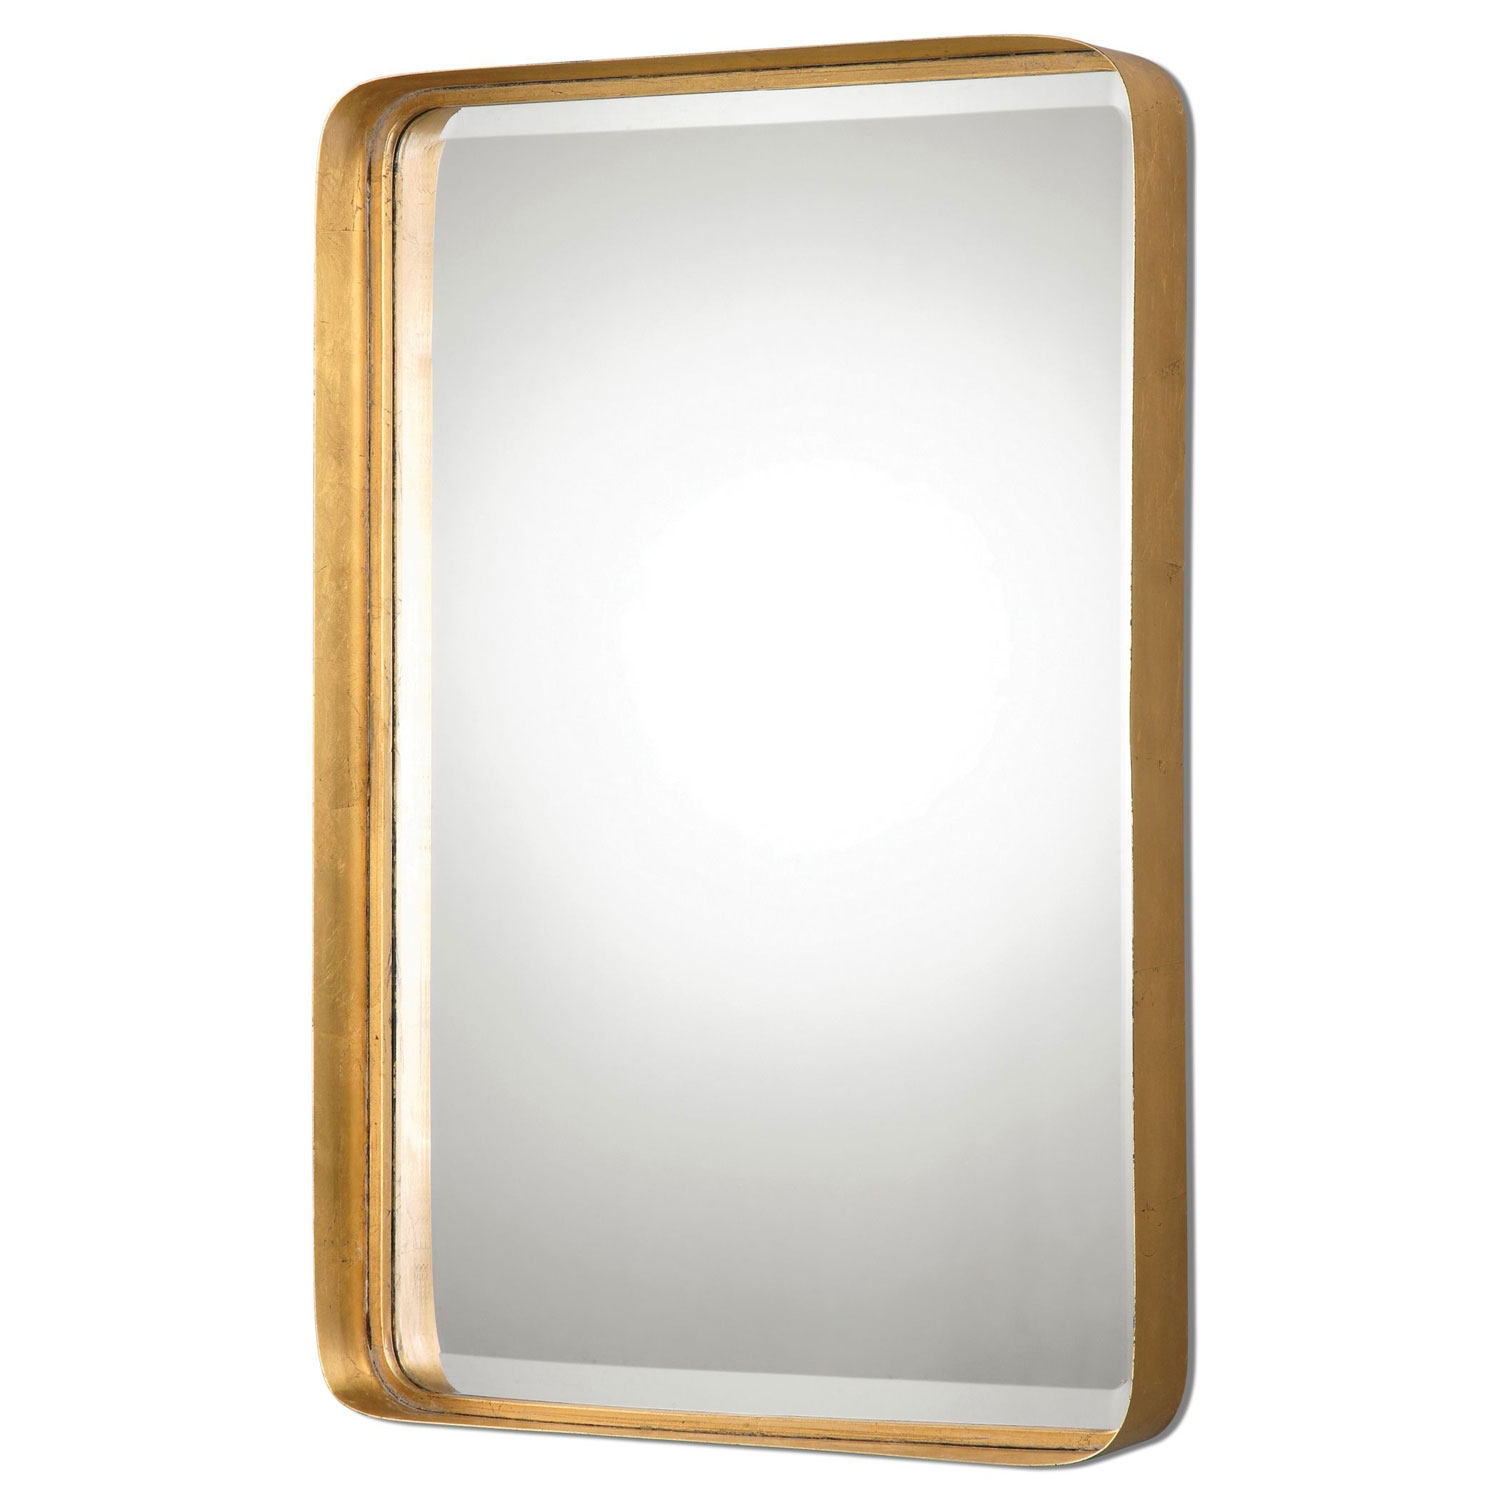 Crofton Antique Gold Mirror Uttermost Rectangle Mirrors Home Decor Regarding Gold Antique Mirrors (Image 5 of 15)